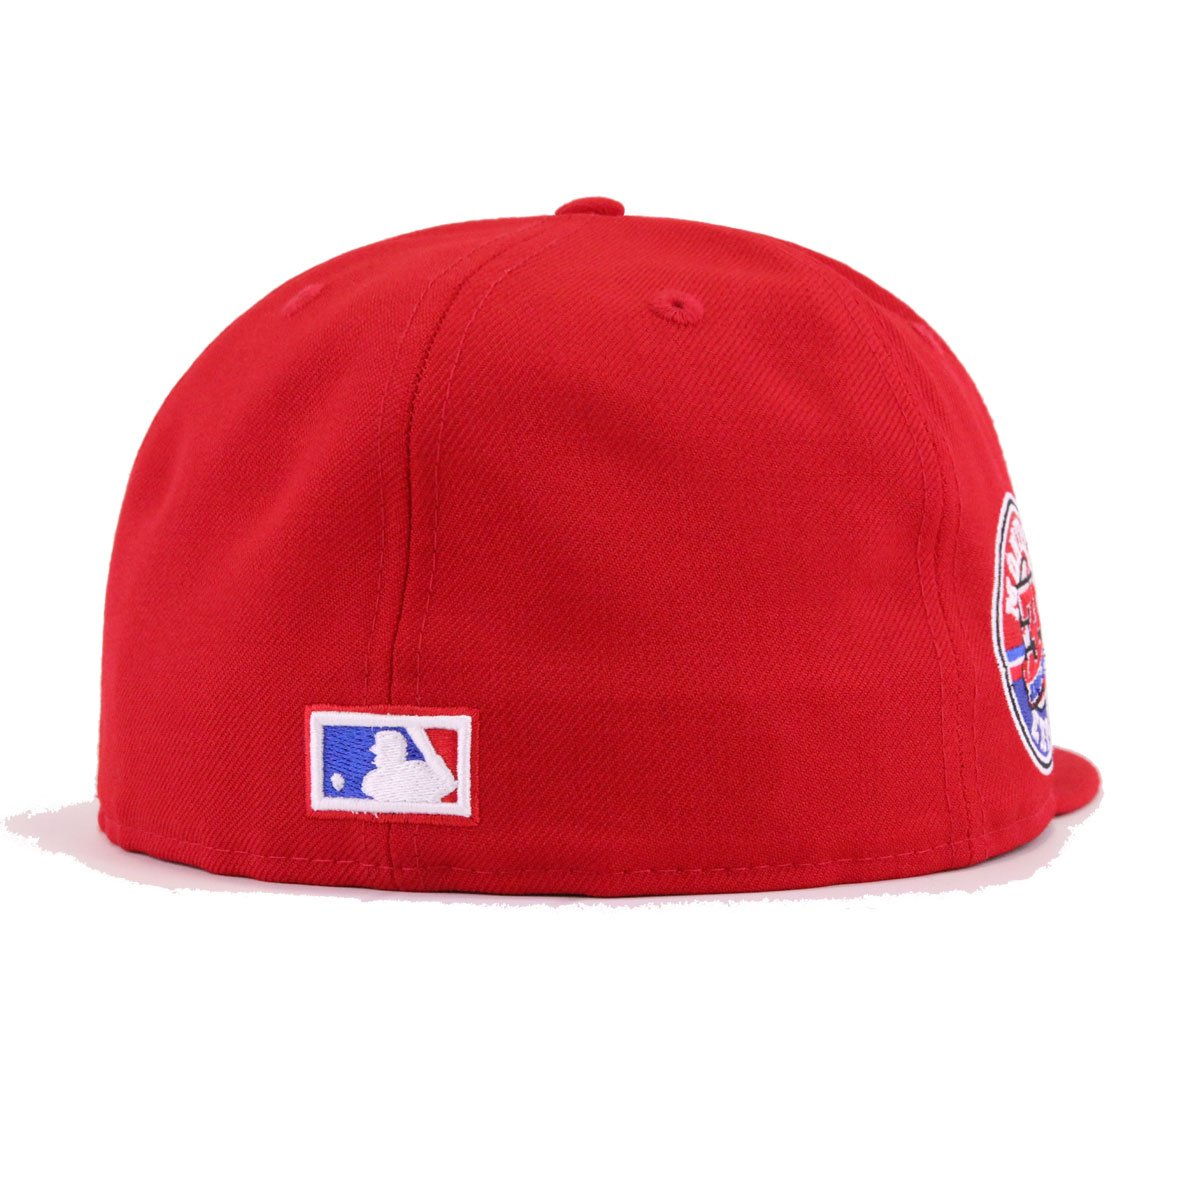 New Era Montreal Expos Snapback Hat Cap RED//35th Anniversary Patch//Grey Bottom